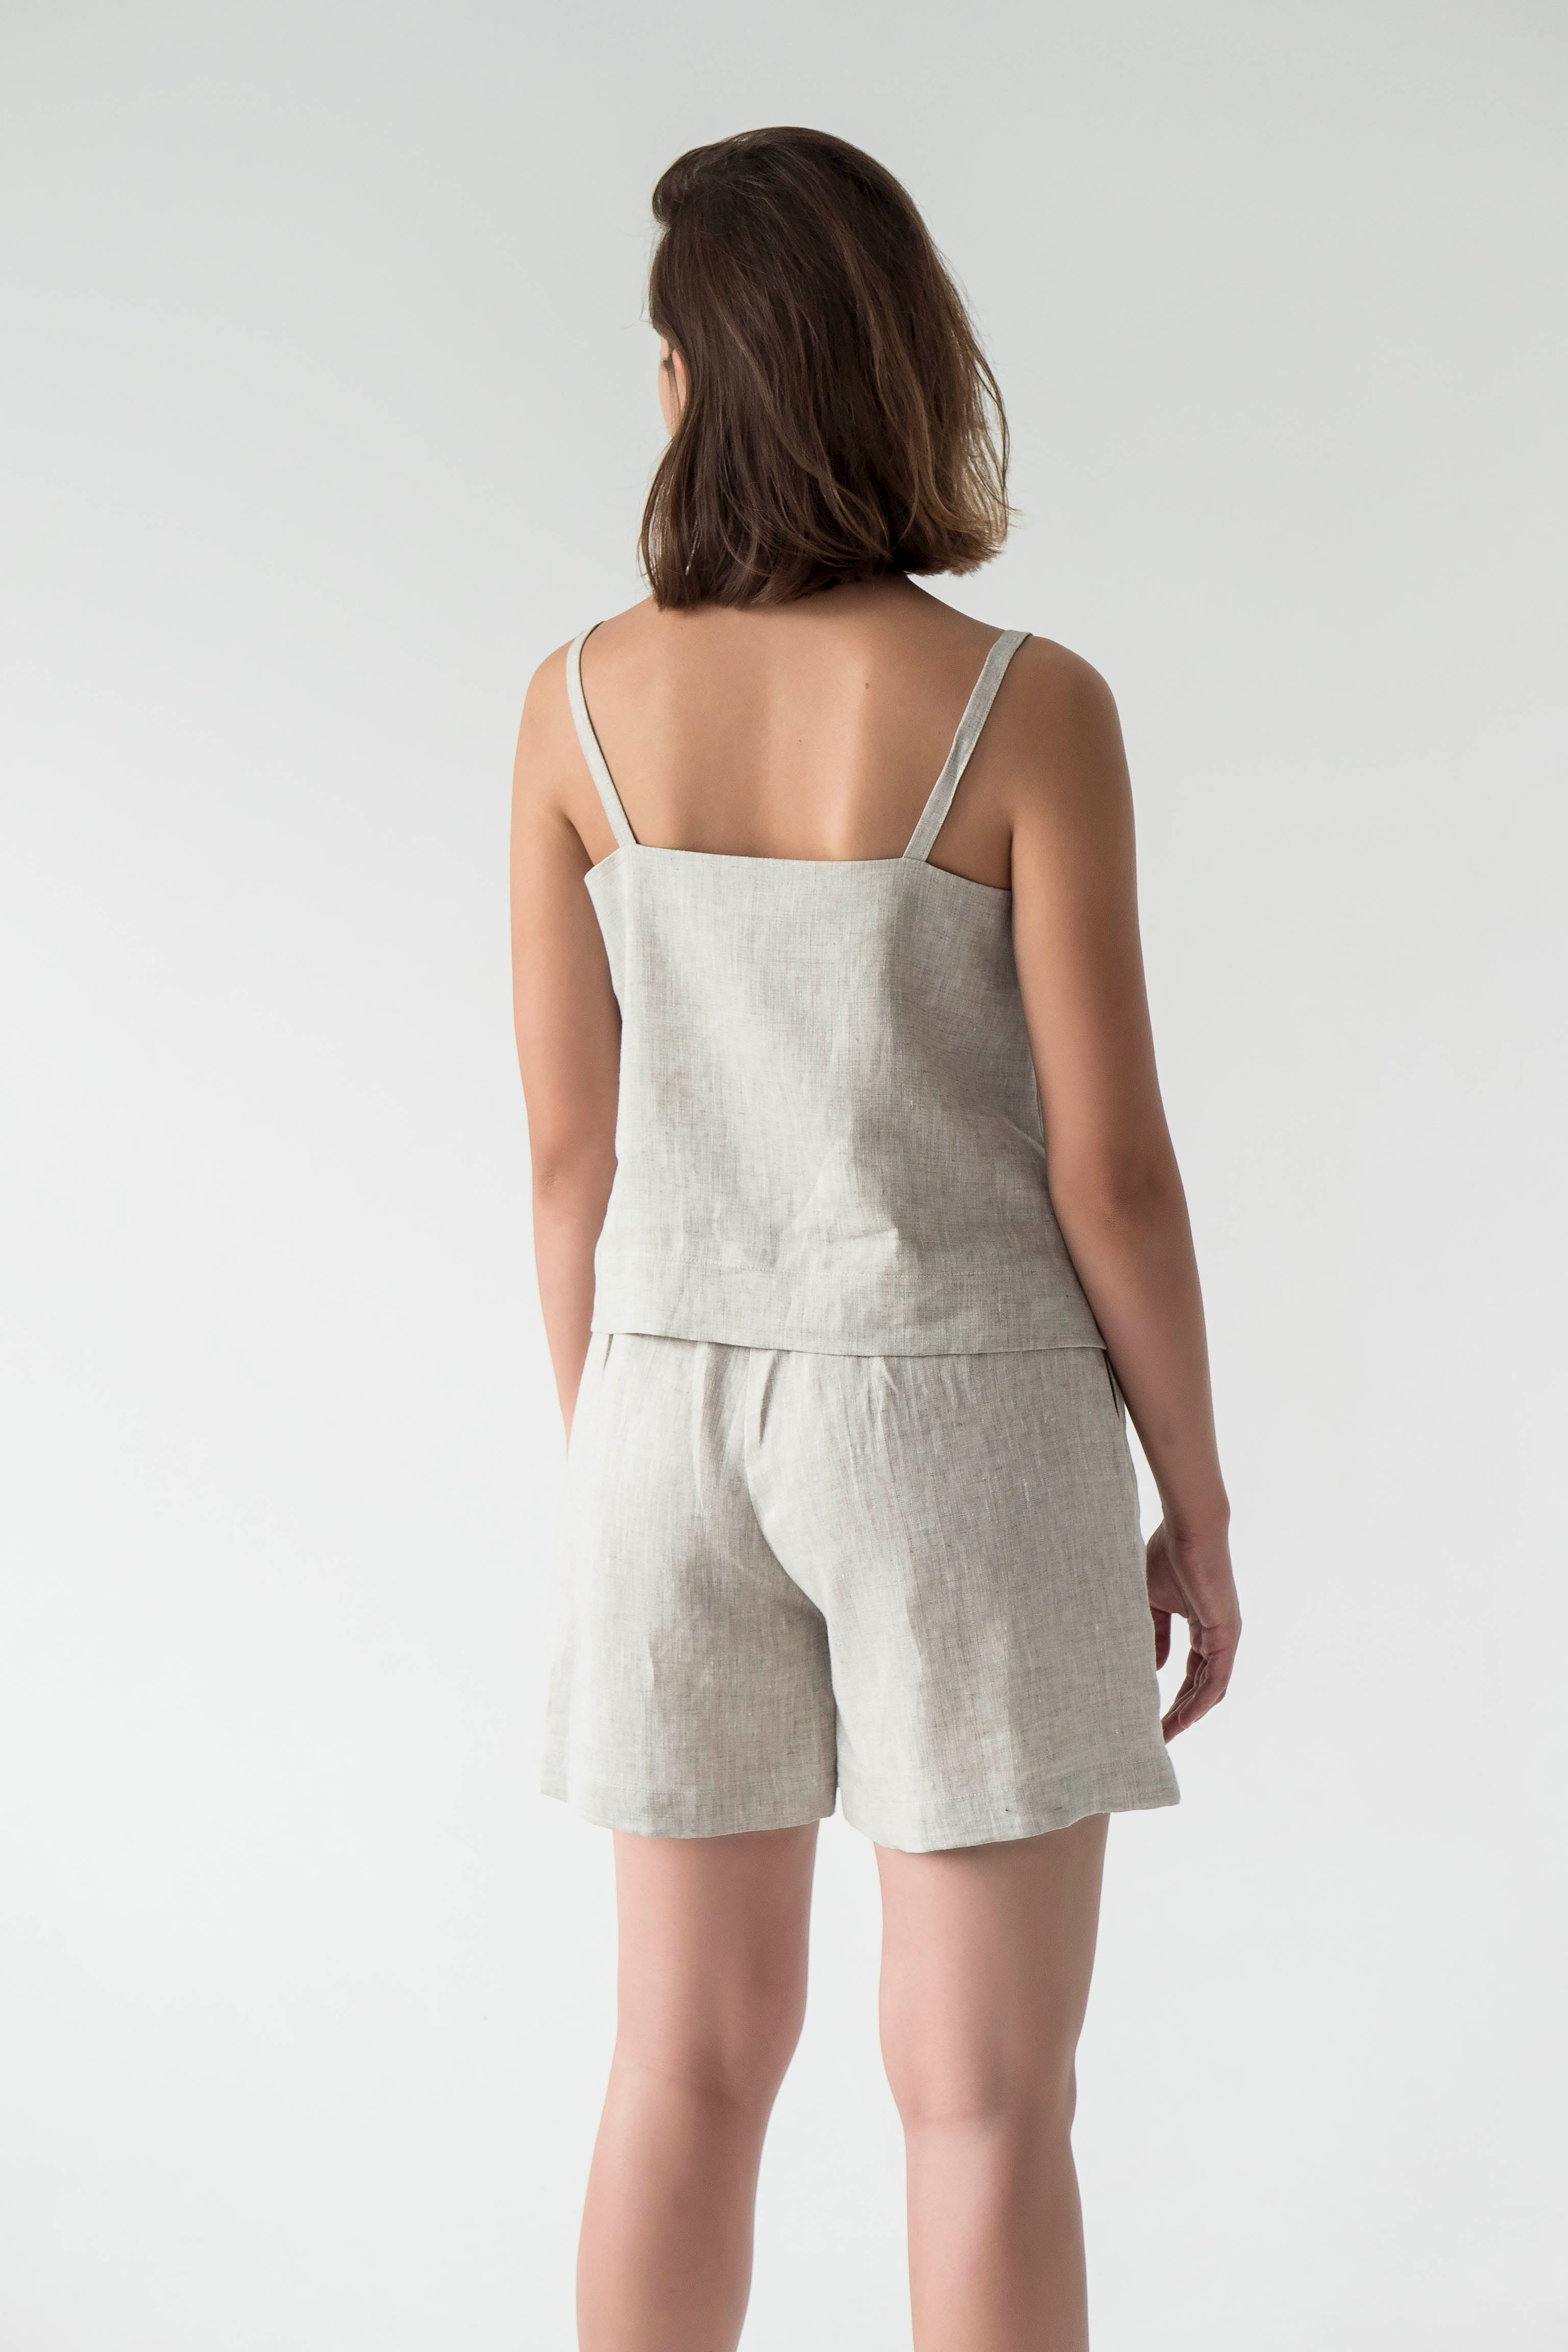 linen set for women top and shorts